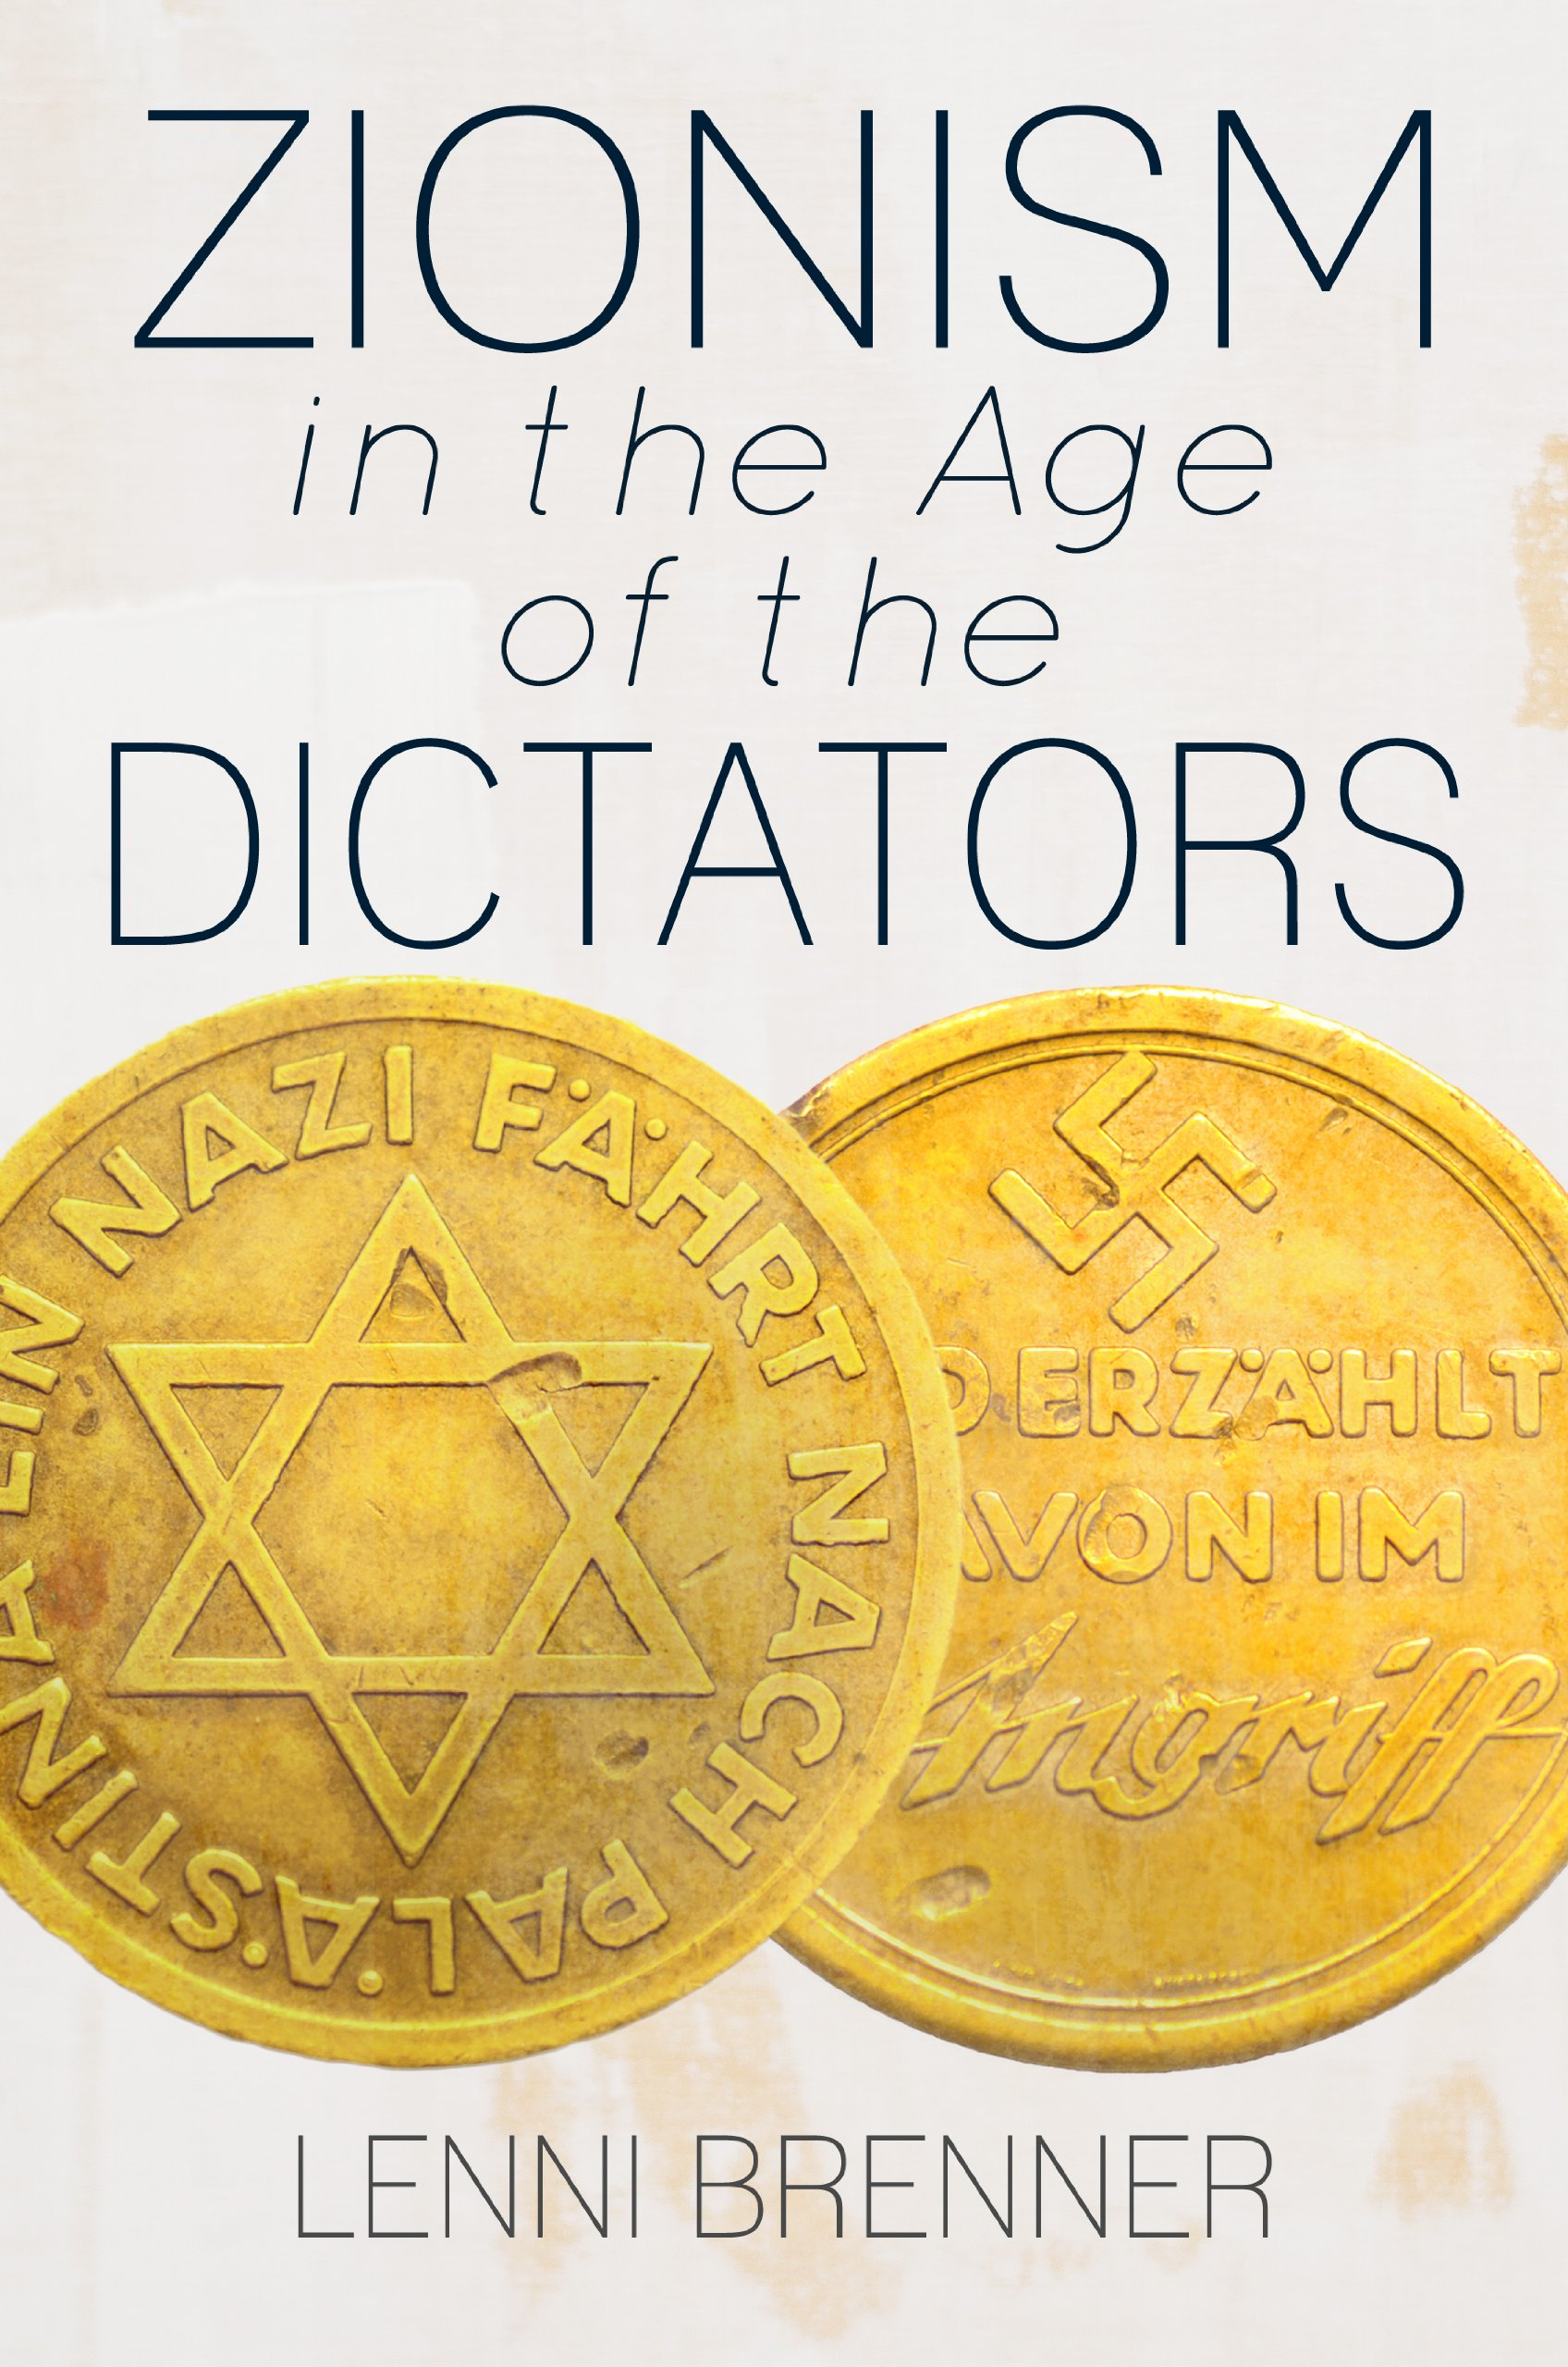 Zionism in the Age of the Dictators PDF